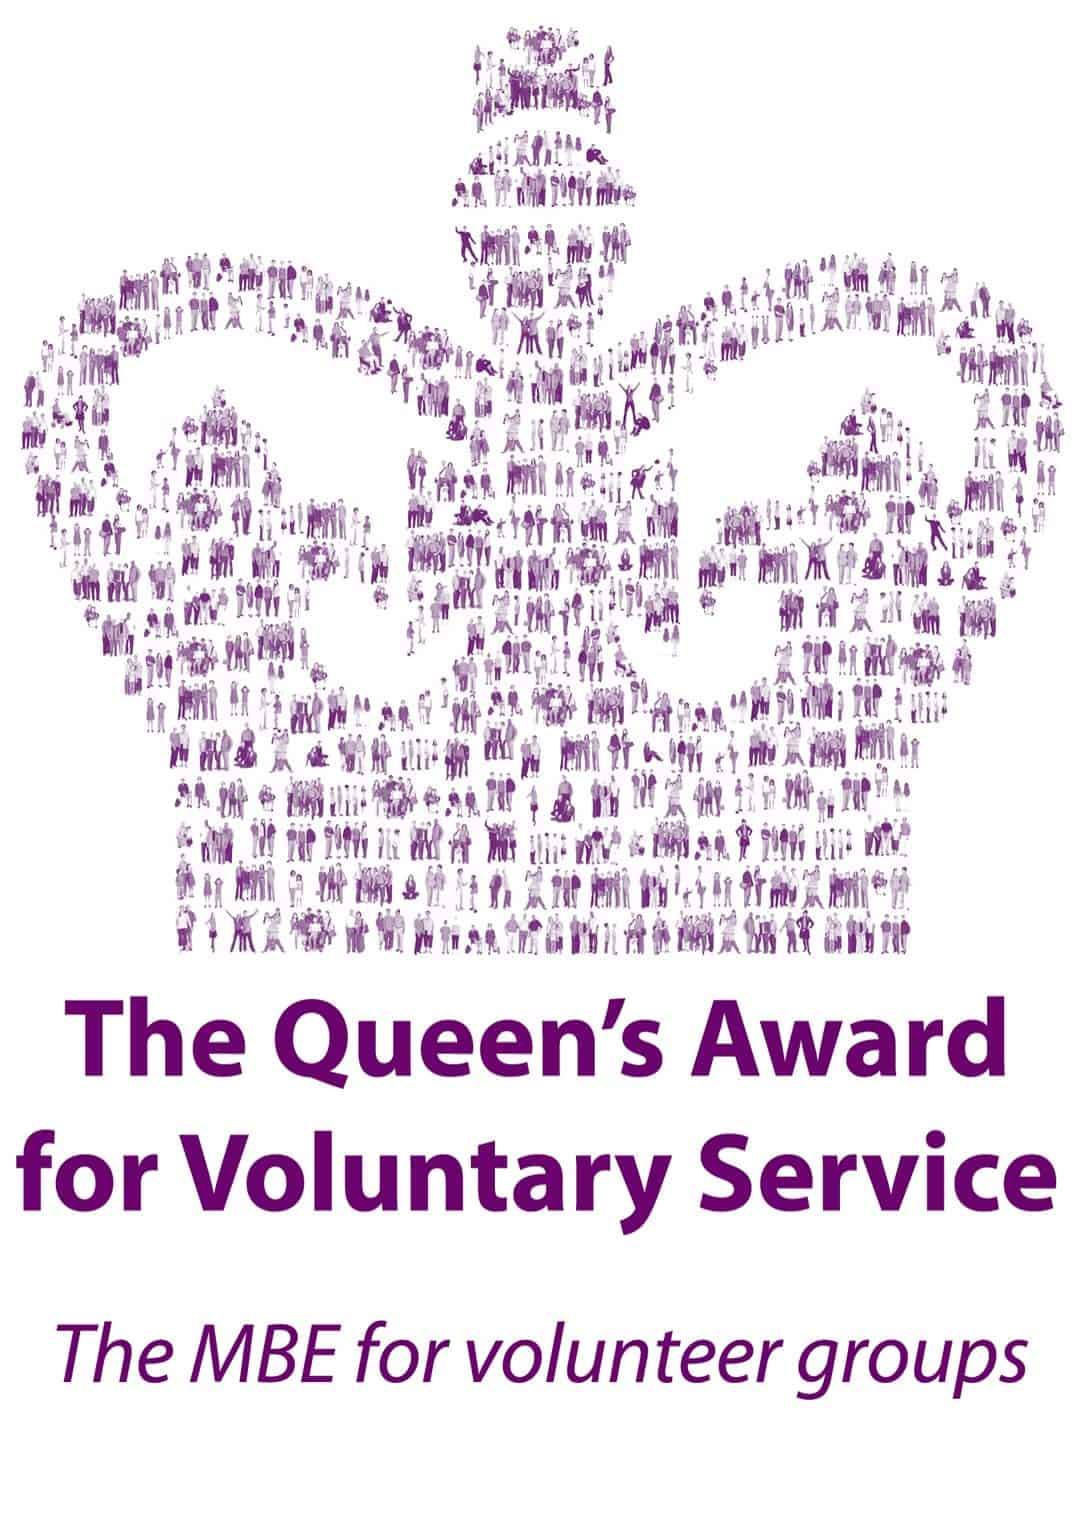 The-Queen's-Award-for-Voluntary-Service-Logo---MBE-Strap